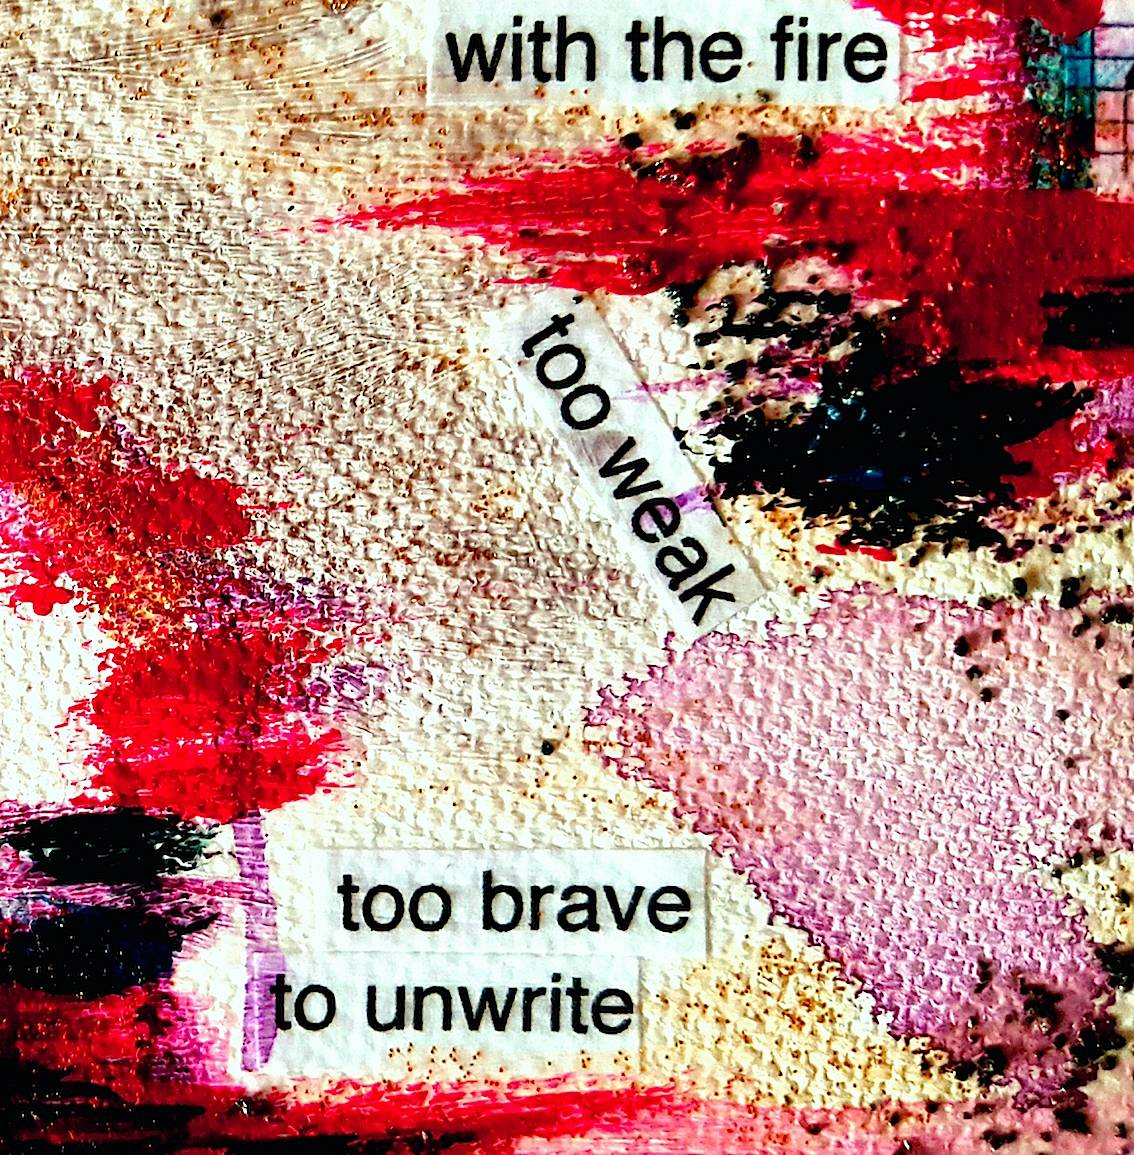 Too brave to unwrite